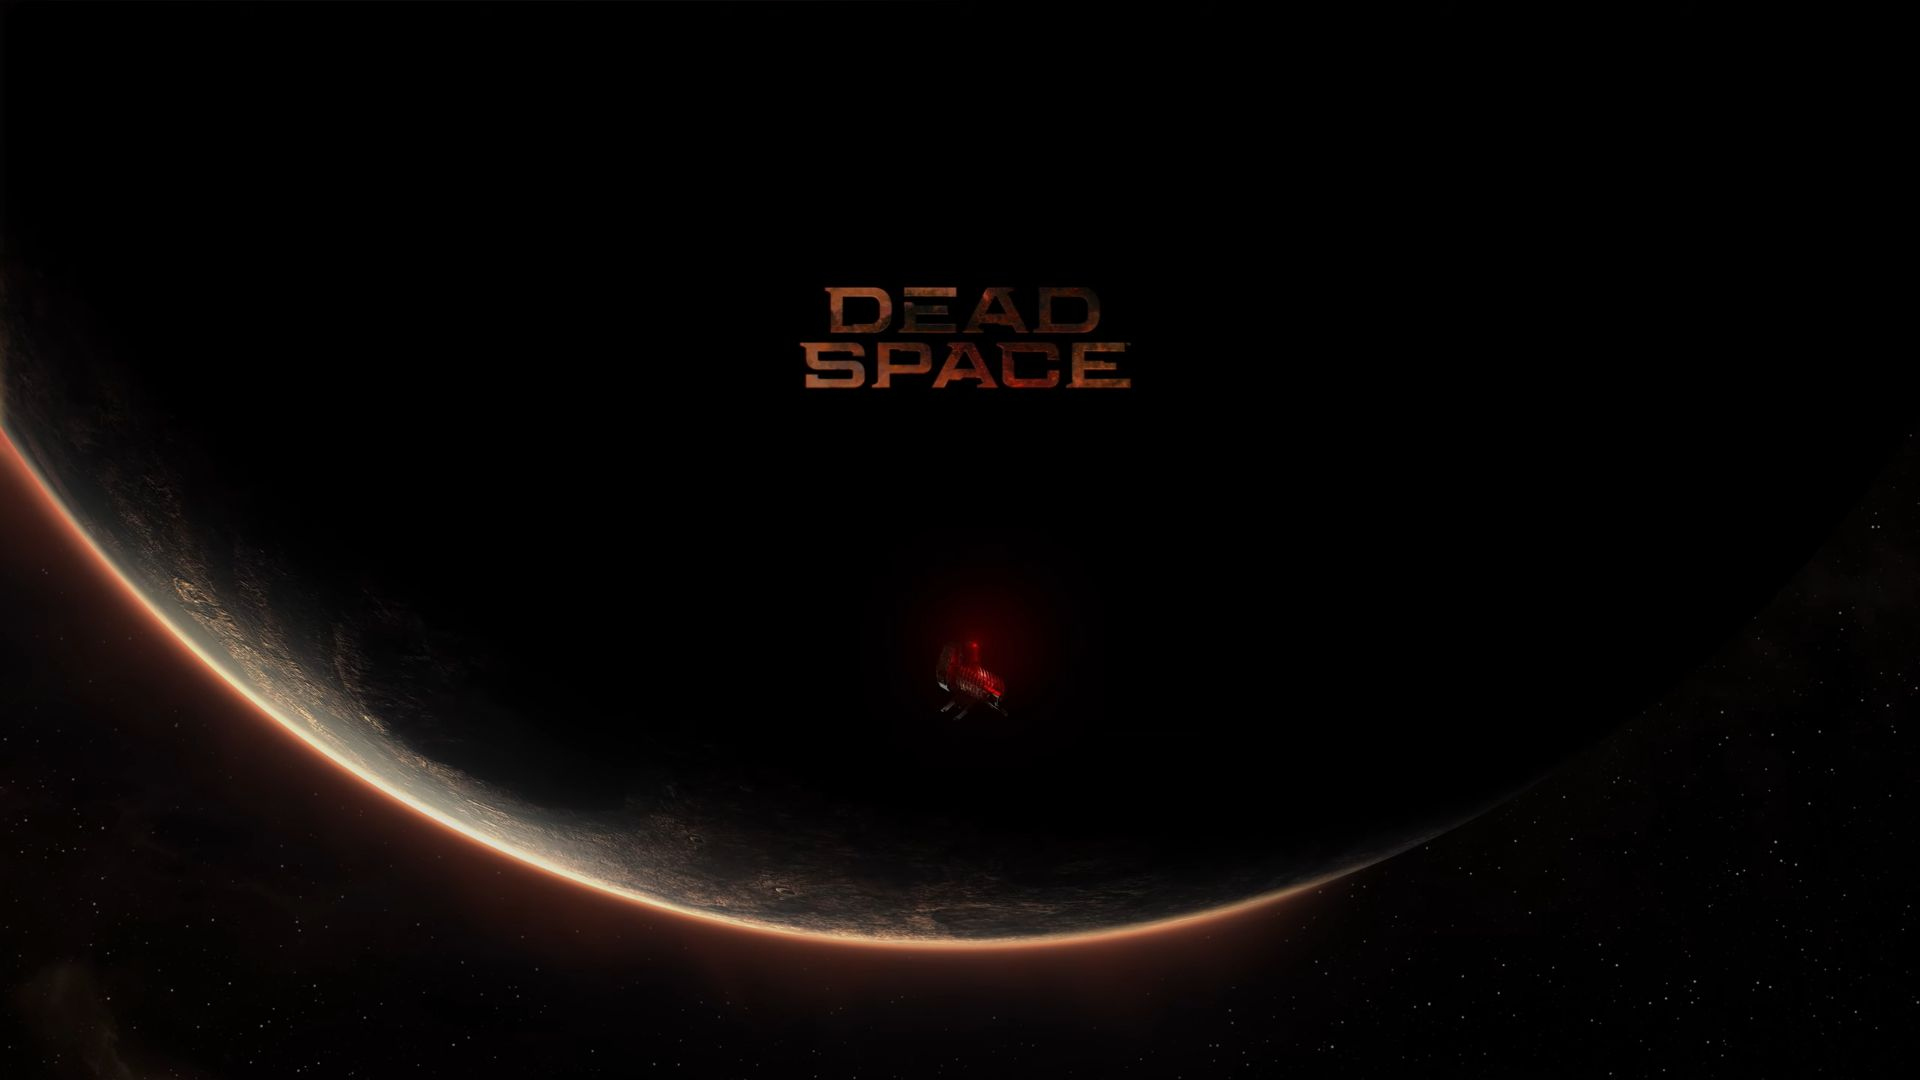 What Can the Dead Space Remake Learn from Resident Evil 2?